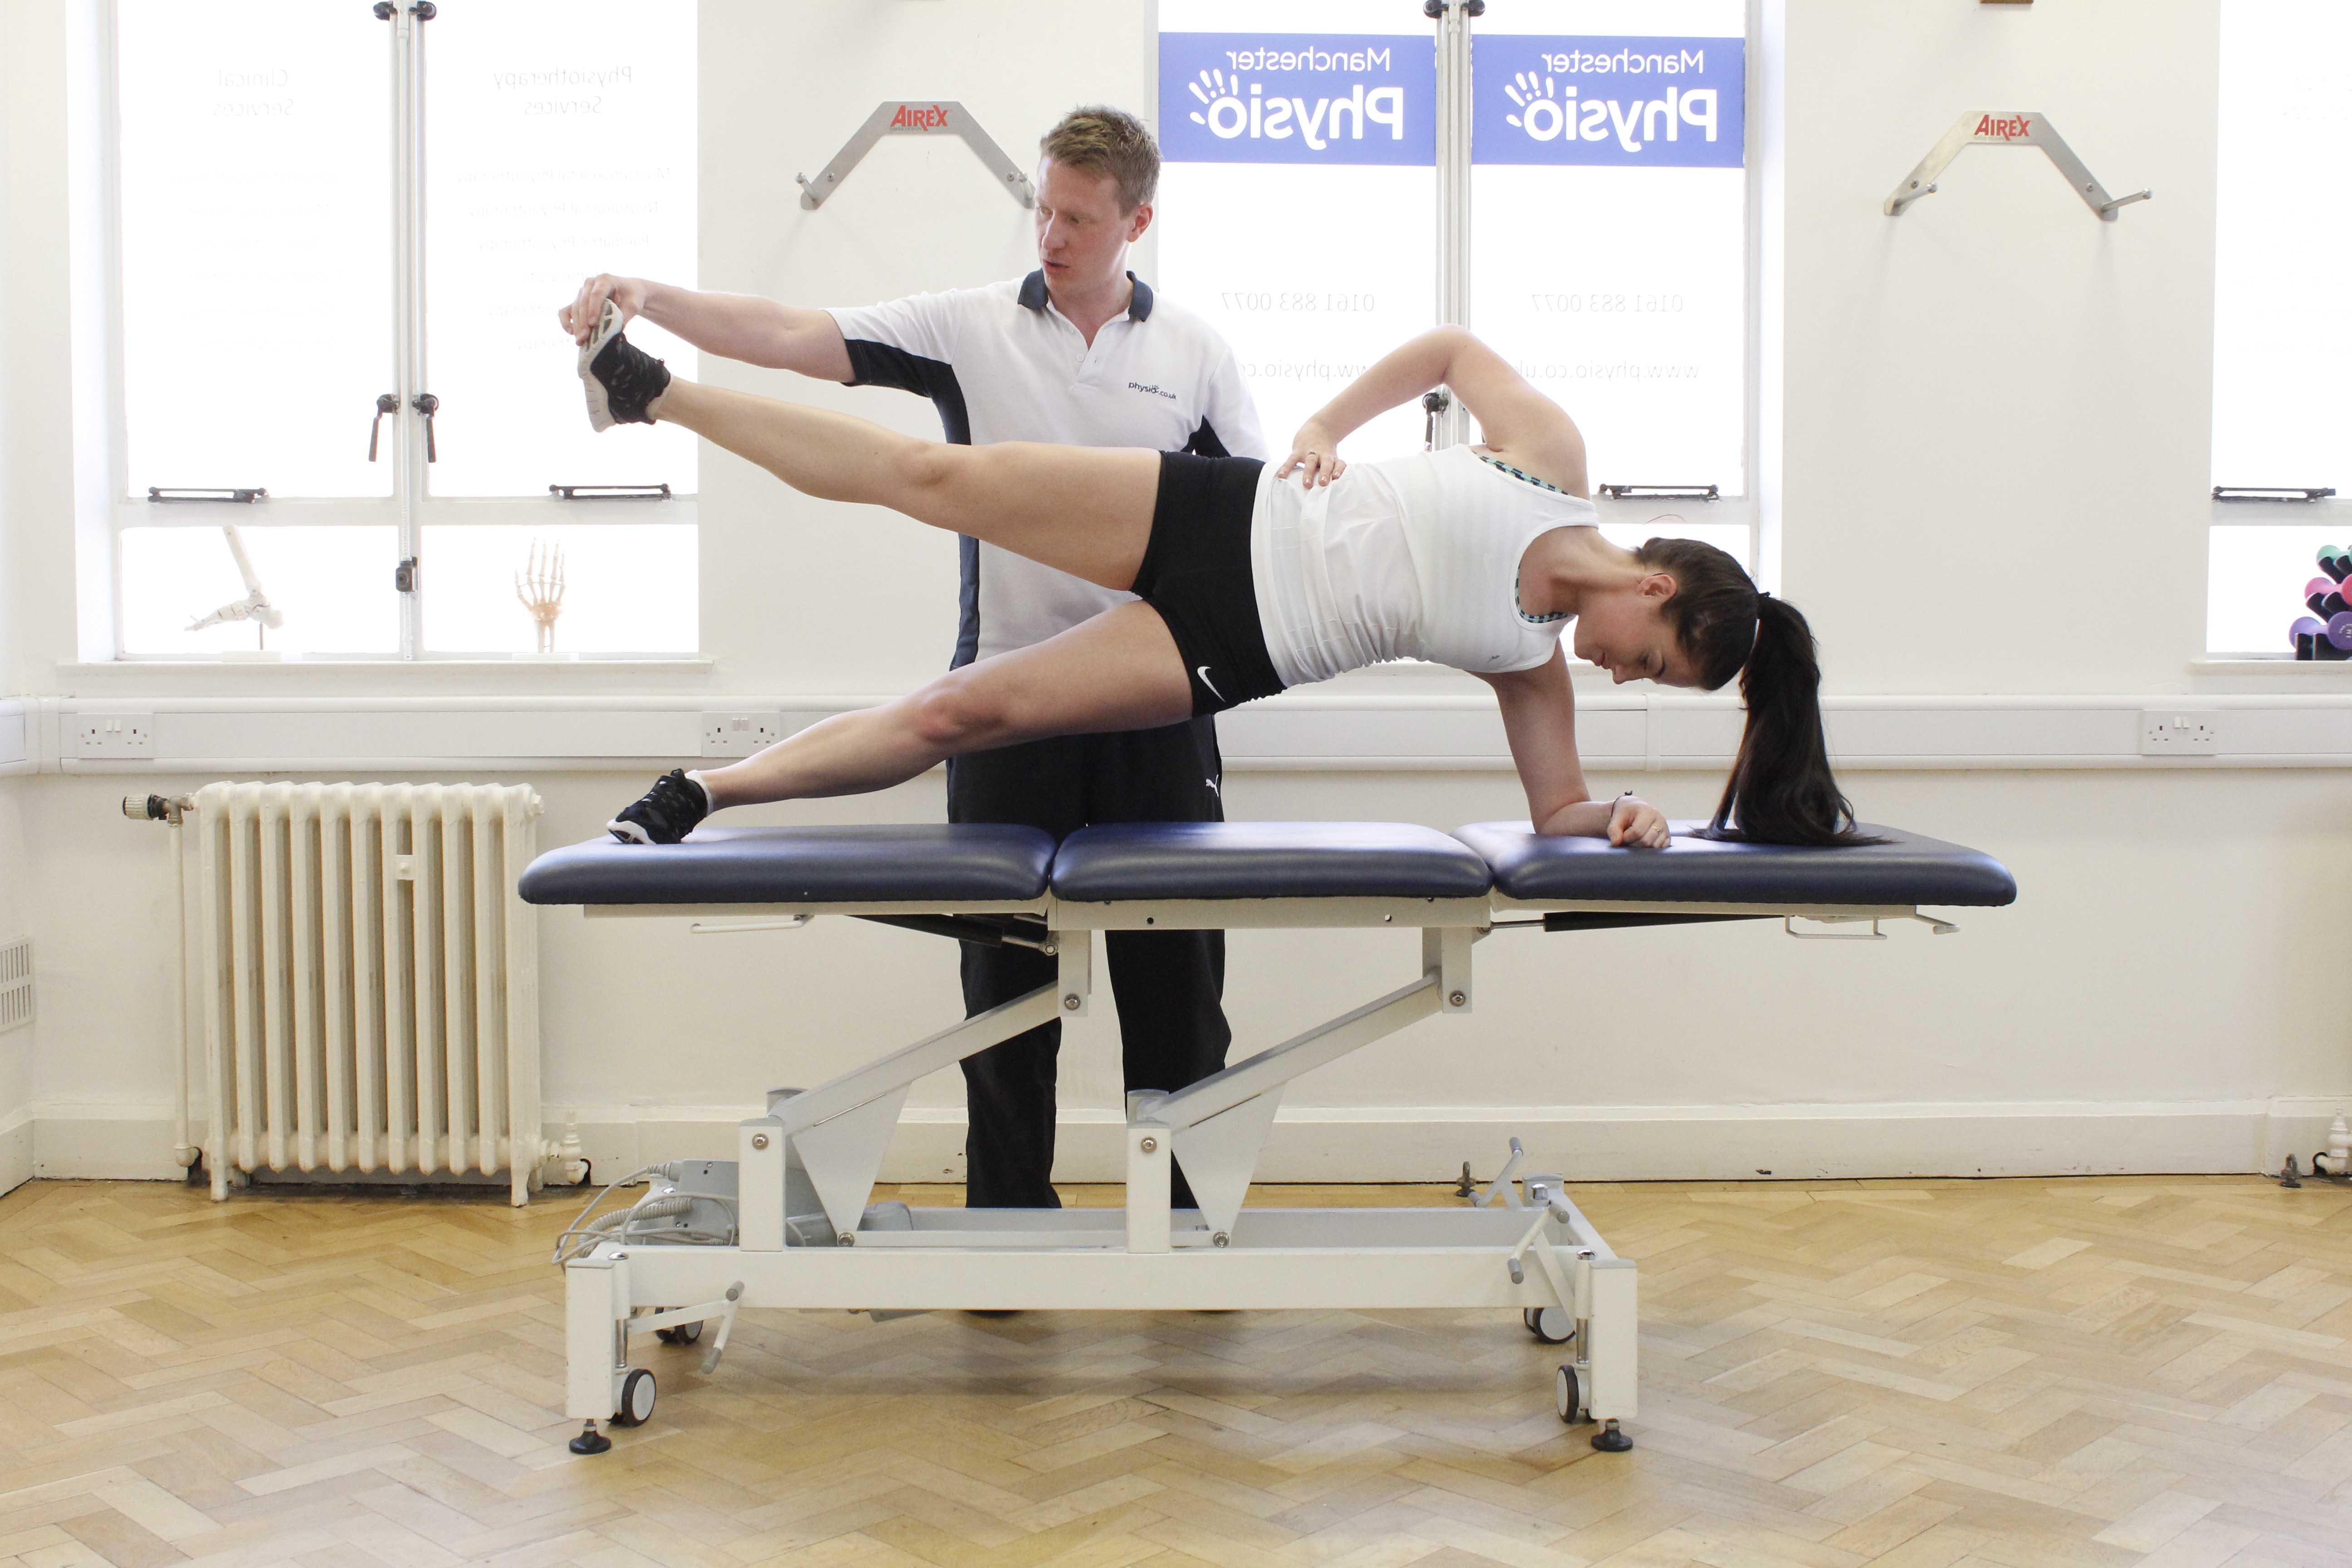 Strengthening and toning exercises performed under the supervision of an experienced physiotherapist